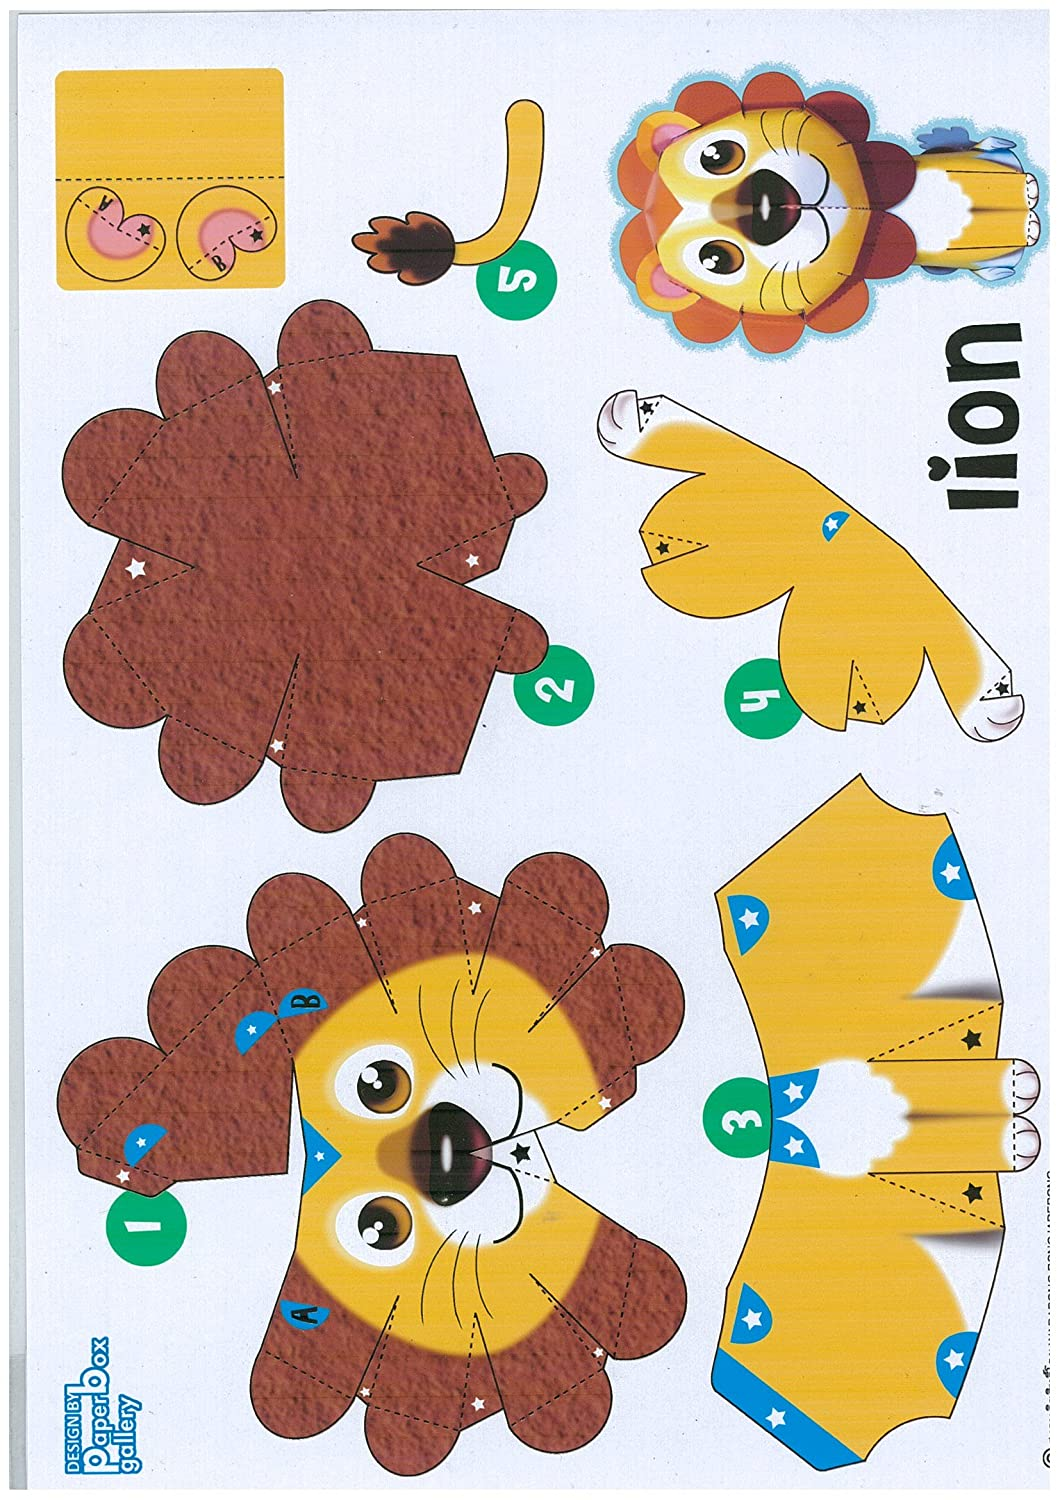 Amazon lion chic high quality animal paper craft mini model amazon lion chic high quality animal paper craft mini model easy fun jeuxipadfo Image collections